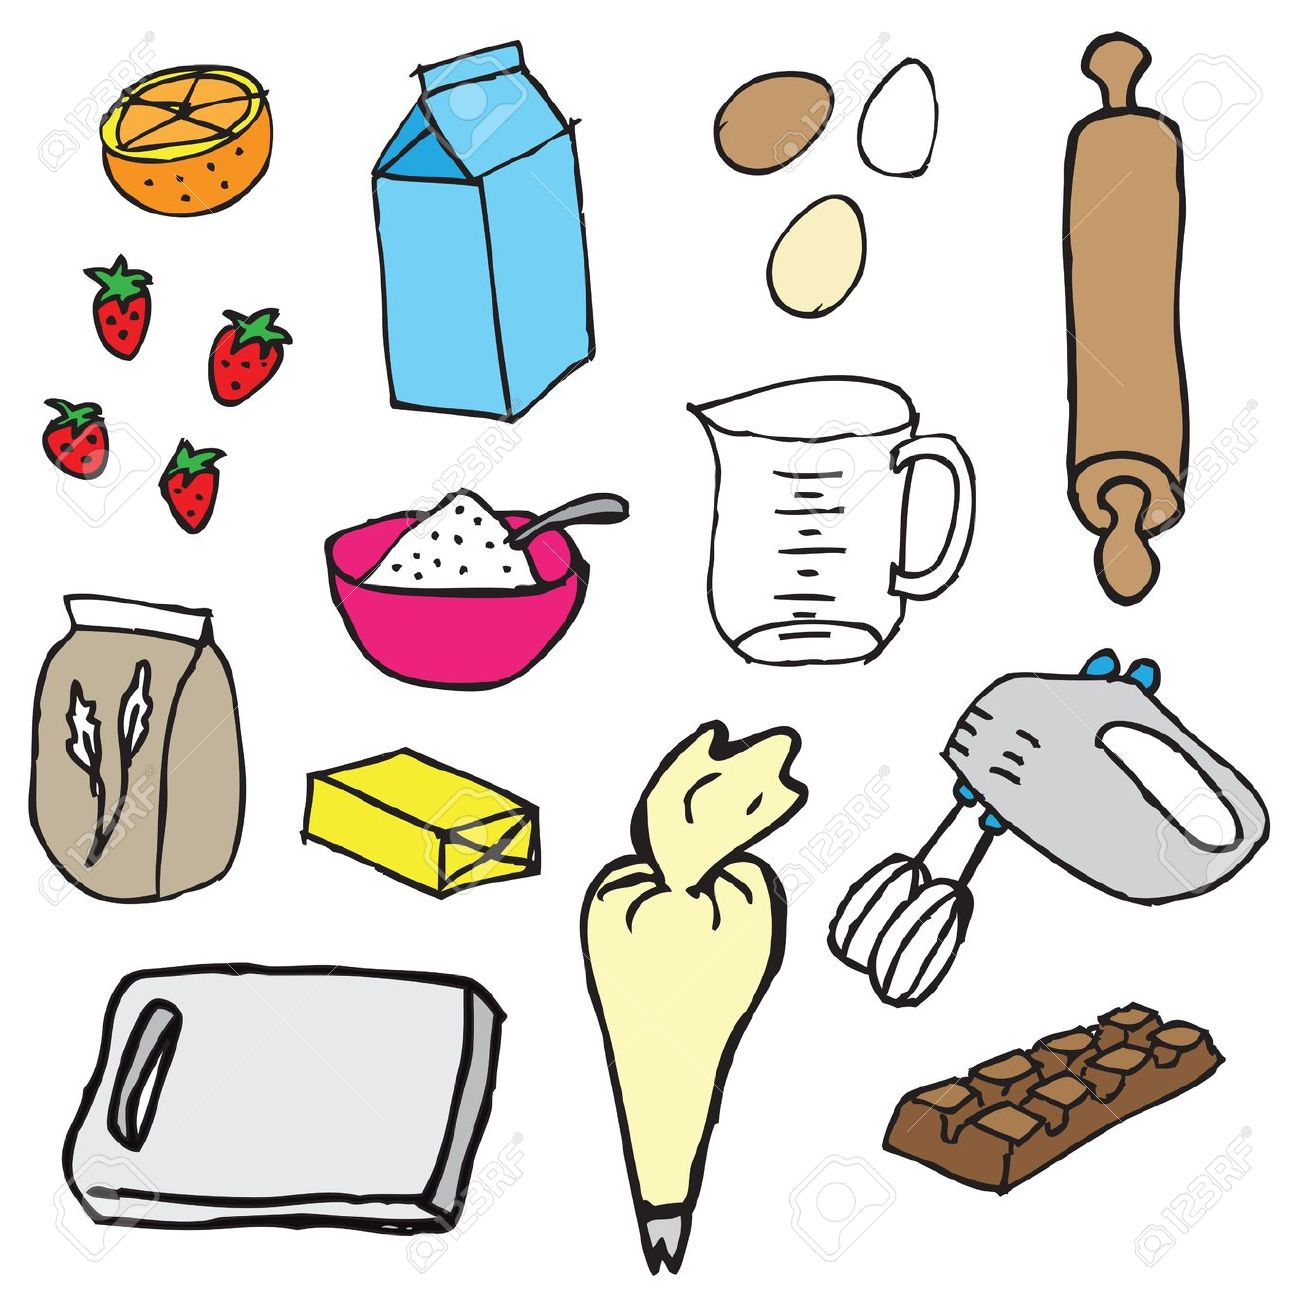 Ingredients Clipart Free Download Best Ingredients Clipart On